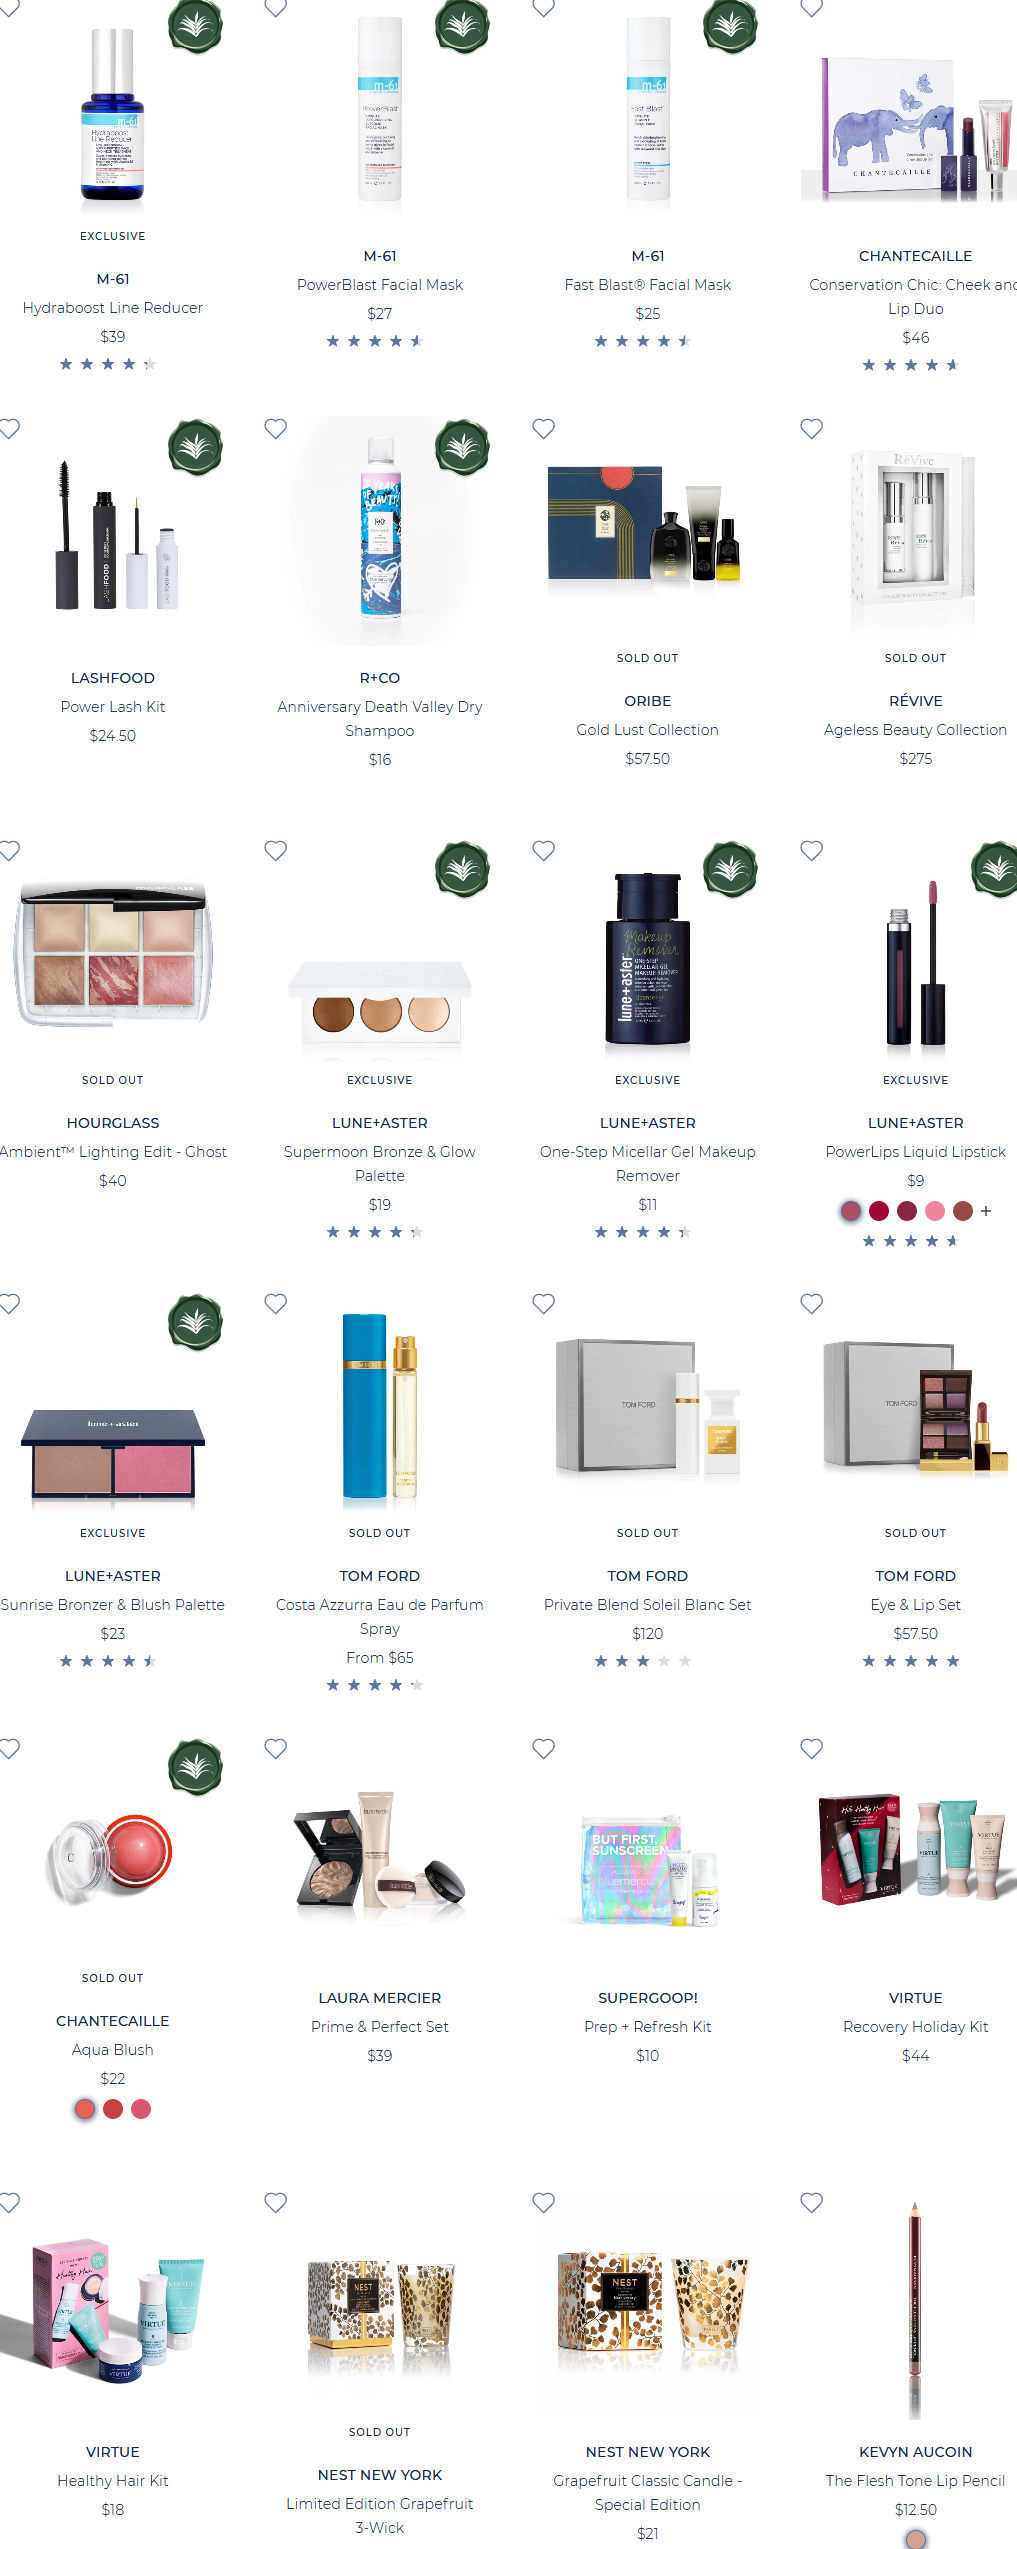 01-07 Online Exclusive Beauty Offer 50% Off icangwp (2)